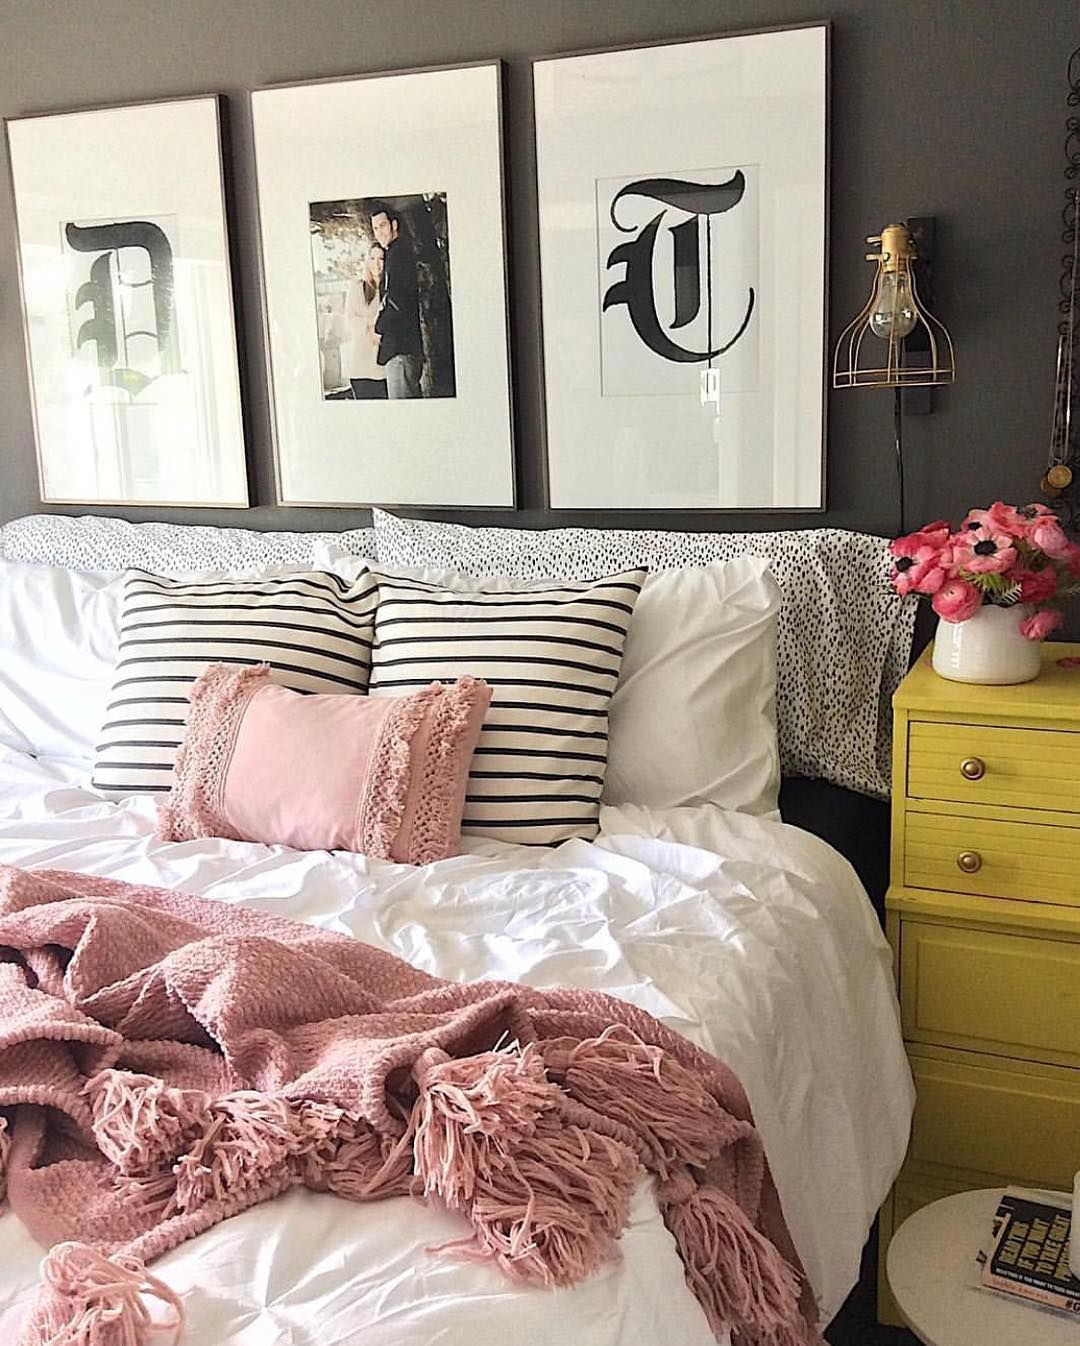 ❤ Dreamy bedrooms on Instagram • photo © @tlee79 #bedroom #bed ...